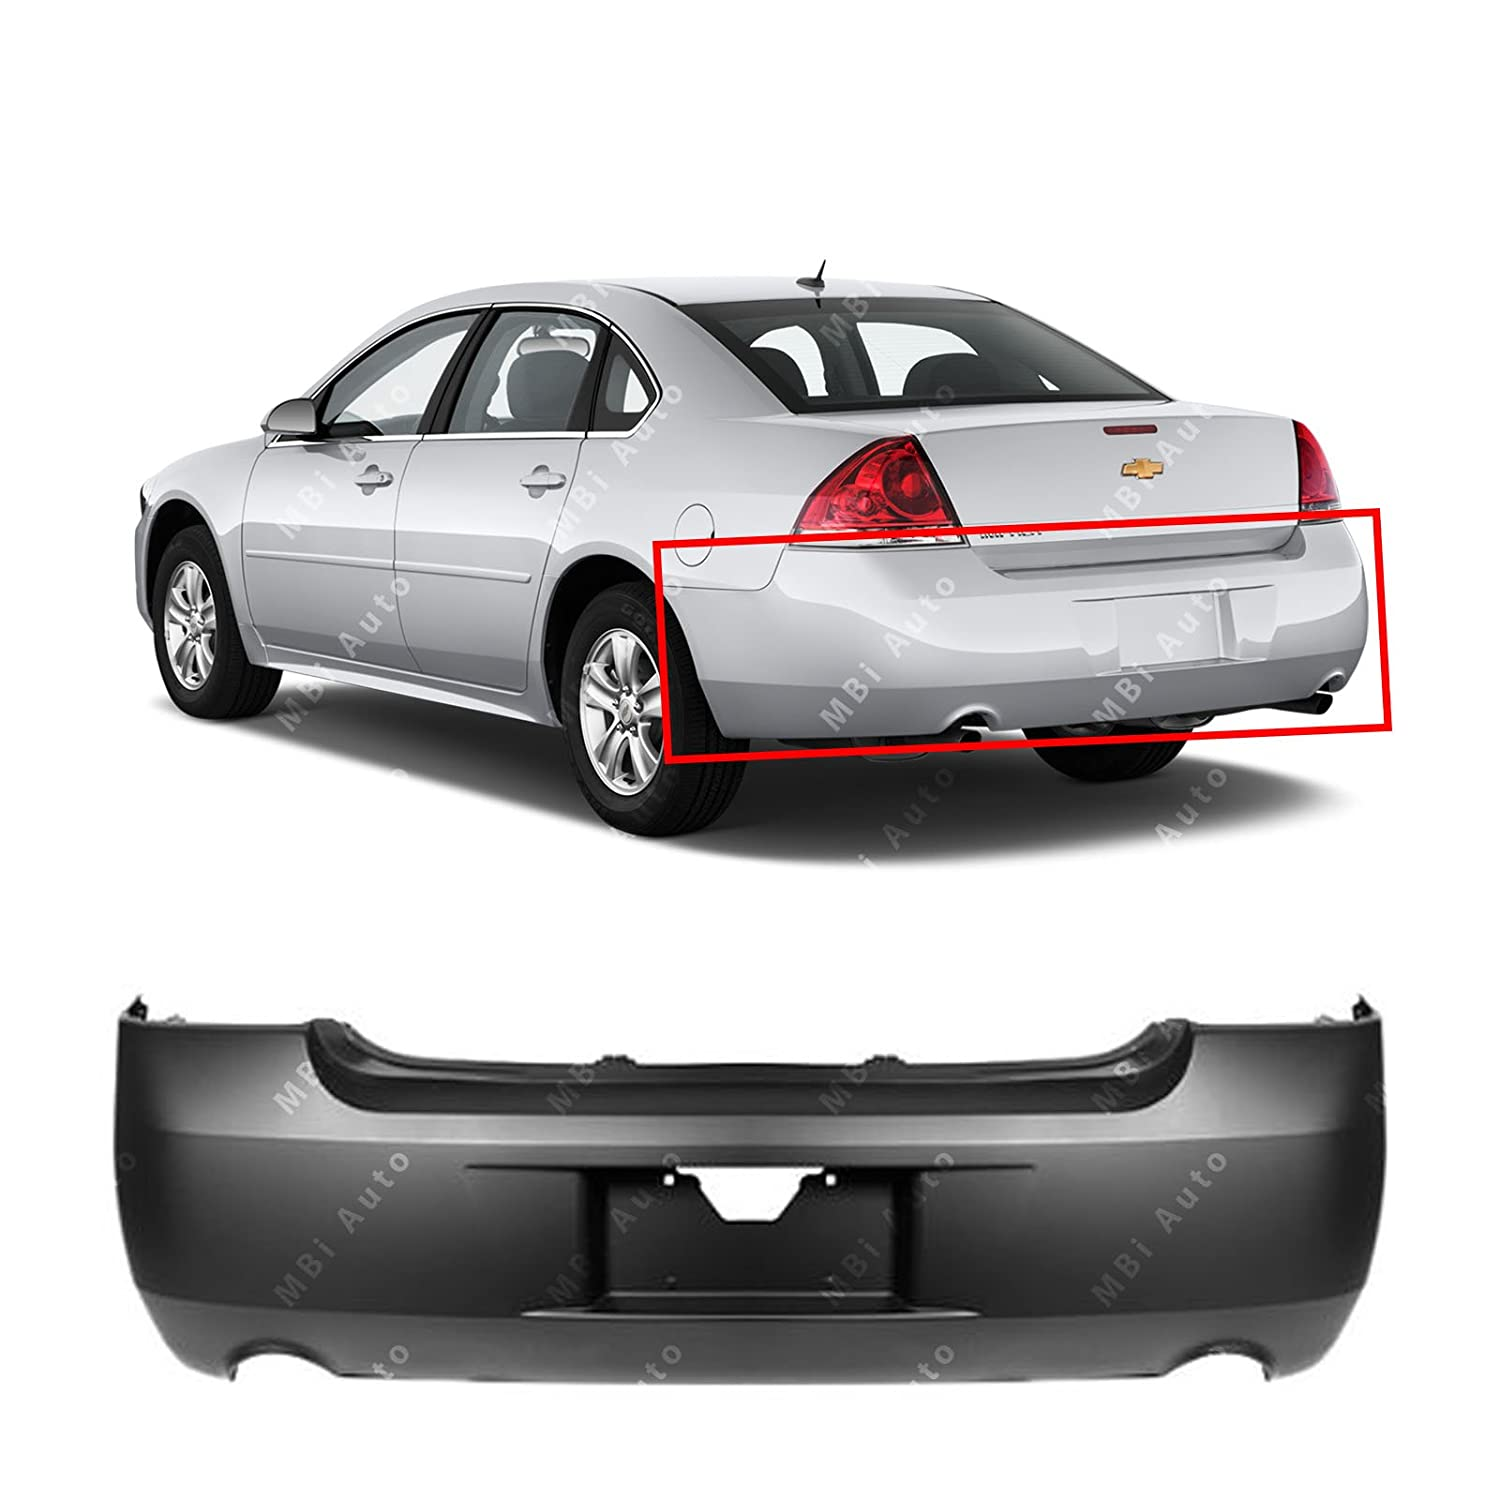 MBI AUTO - Primered, Rear Bumper Cover for 2006-2013 Chevy Impala W/Dual Exhaust 06-13, GM1100736